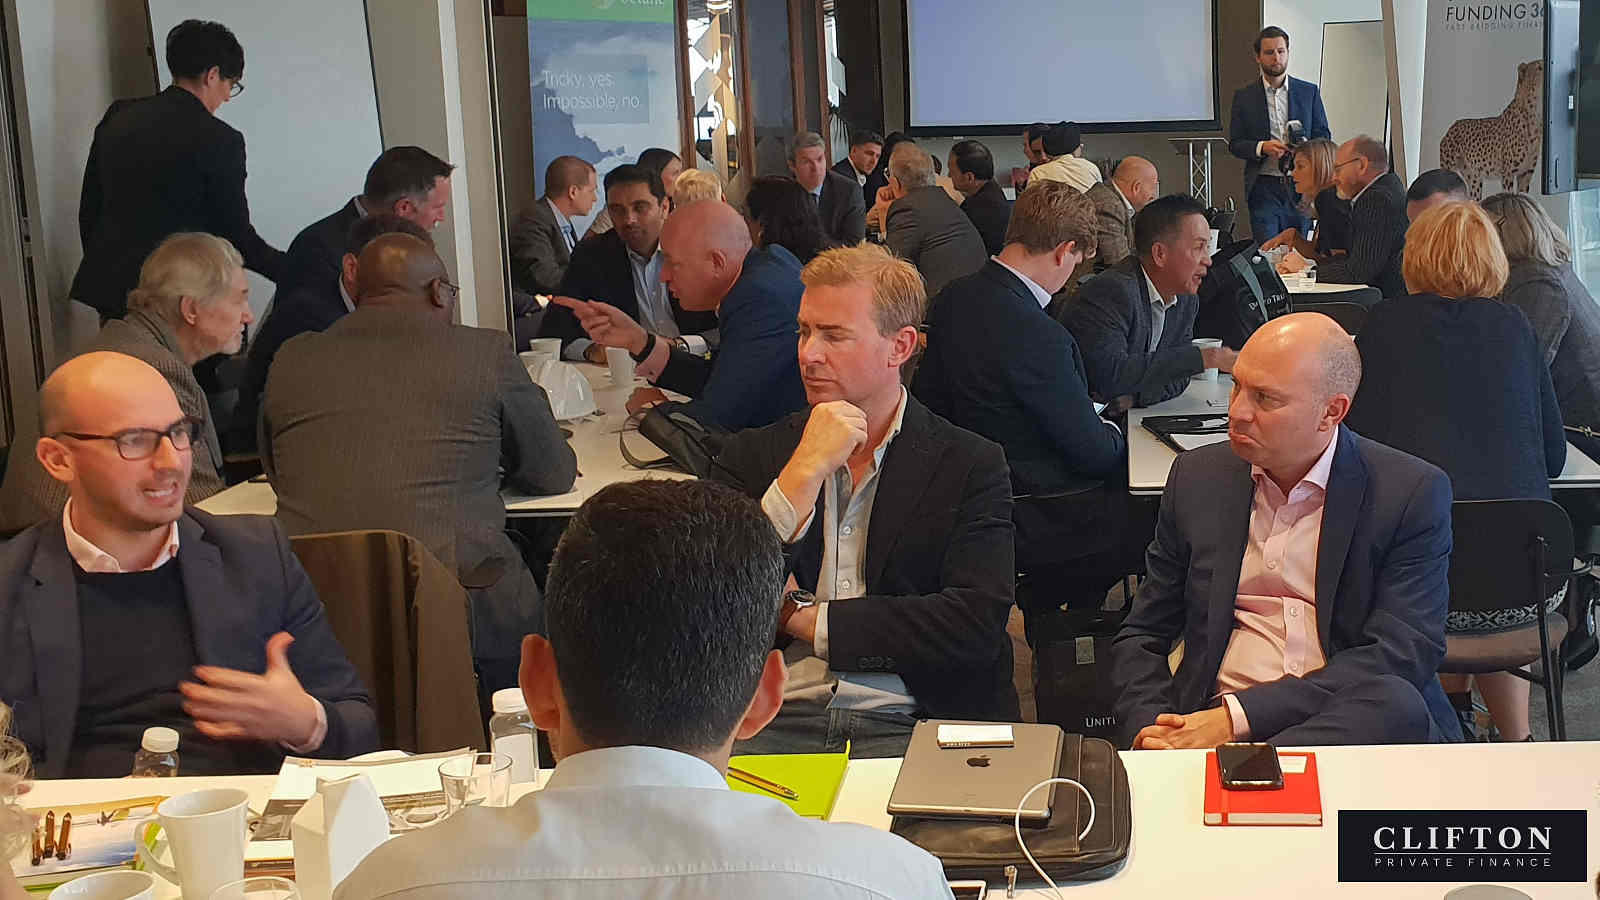 Meeting the property finance experts: clients and lenders get round the table